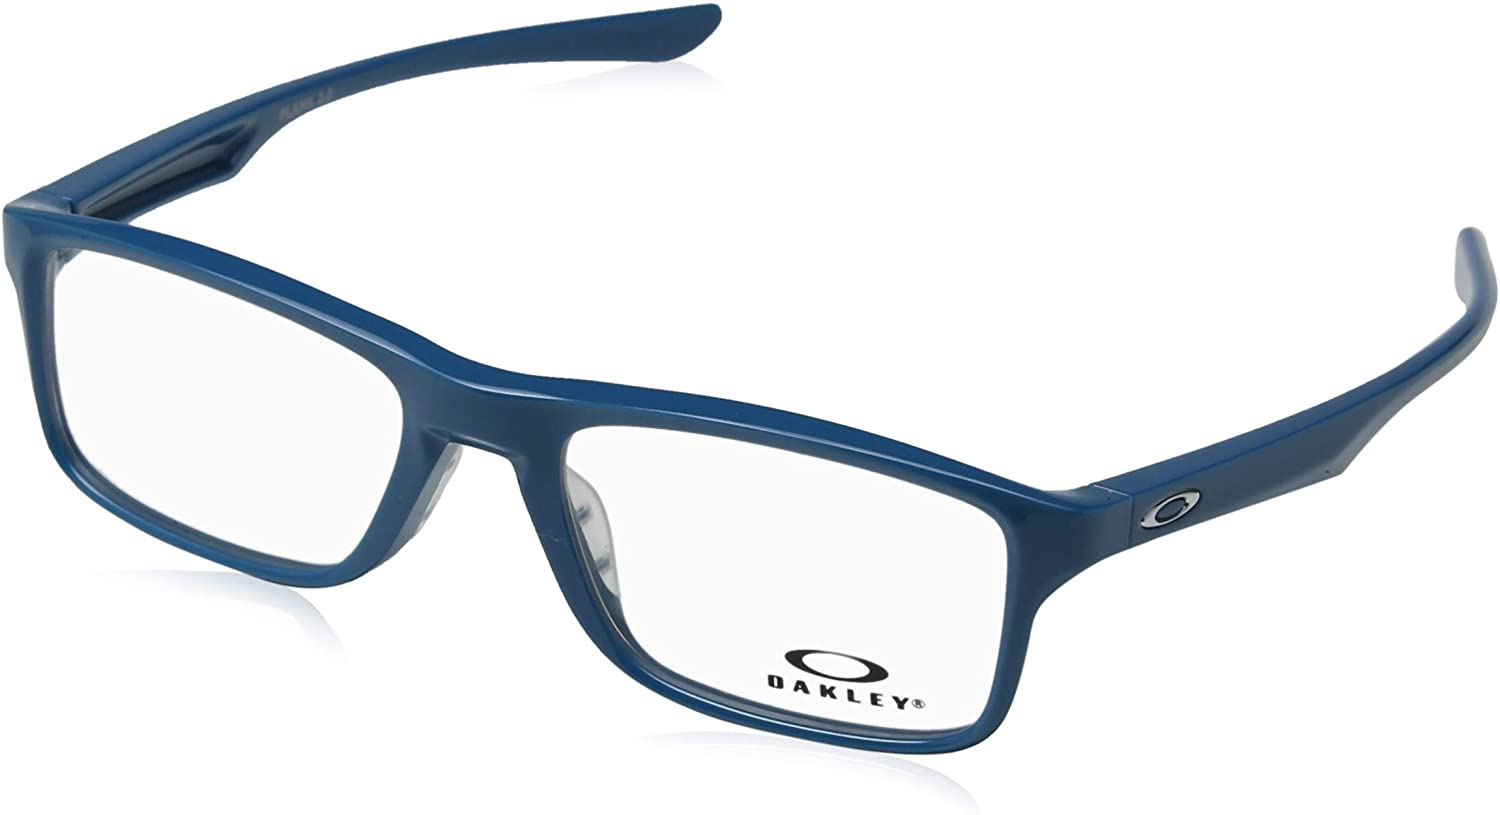 OAKLEY 0OX8081 - 808105 Baltimore Mall 53mm Eyeglasses BALSAM POLISHED Low price